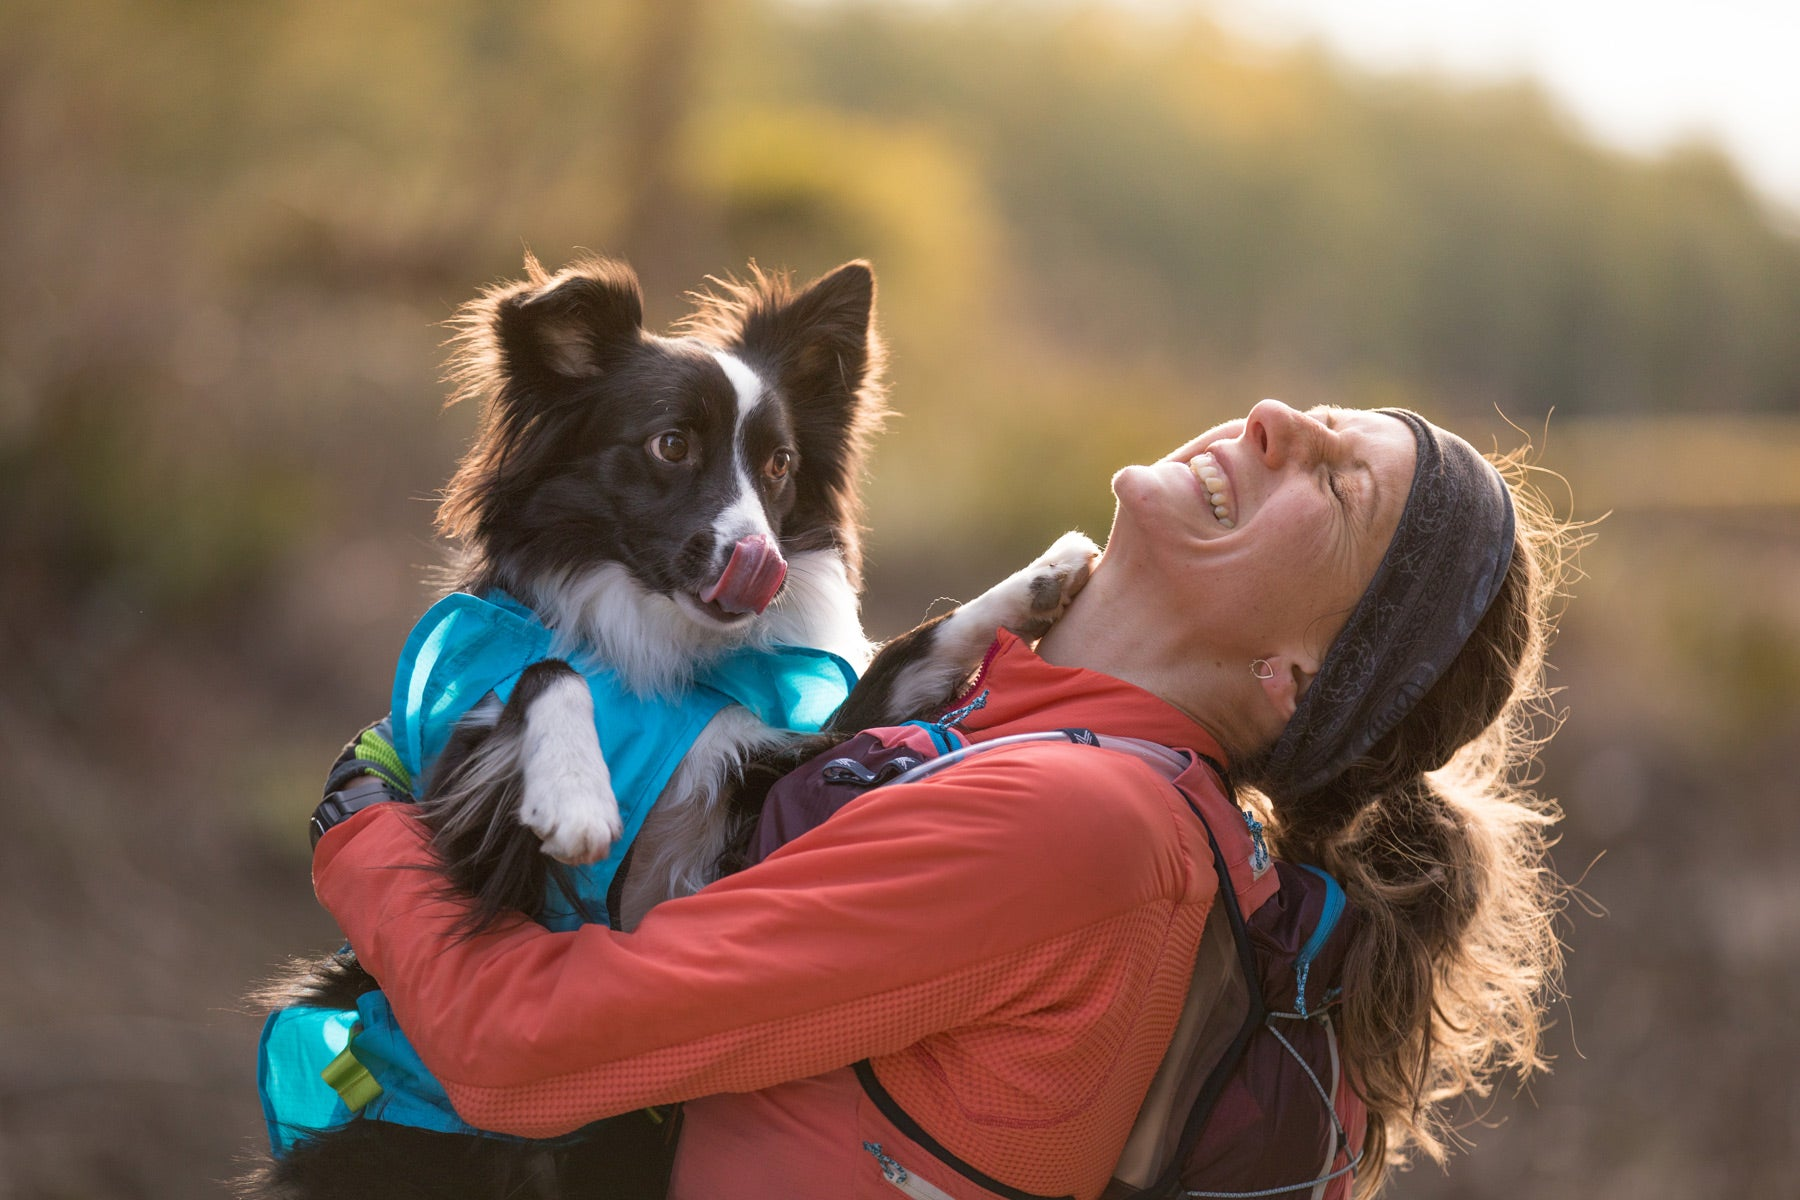 Krissy smiles and laughs while holding PD in her arms while on a trail run.